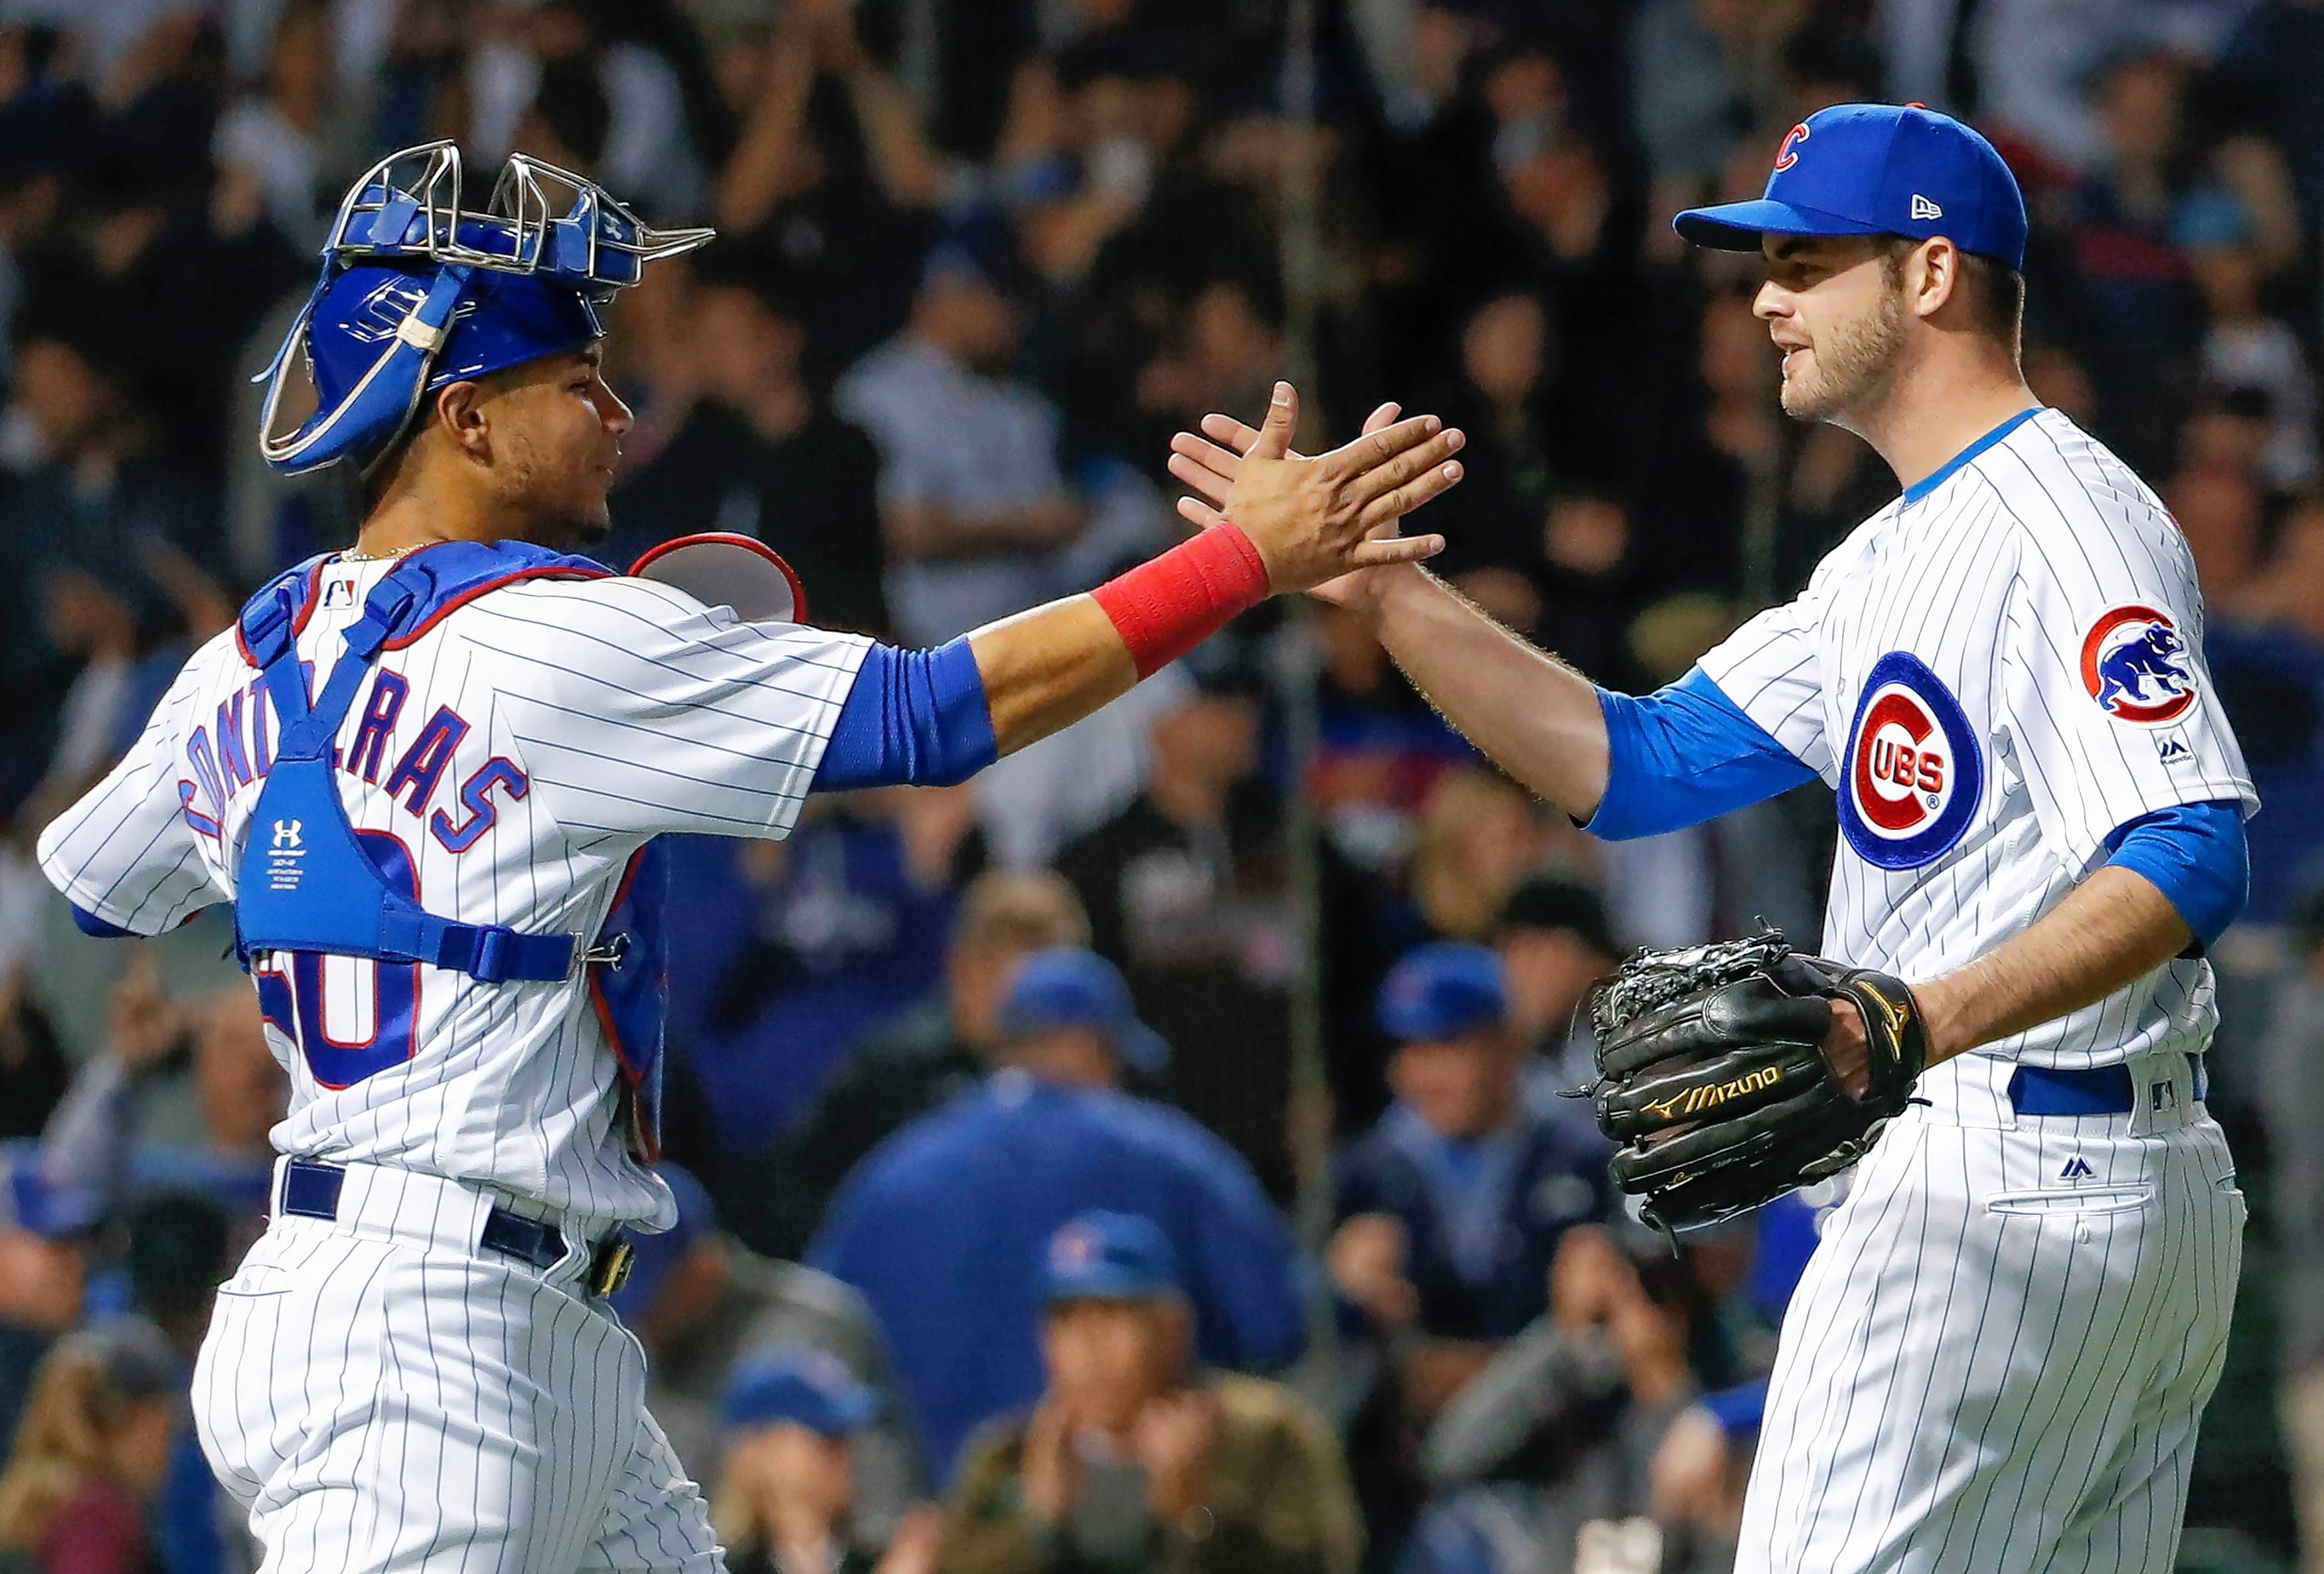 Bullpen depth provides Chicago Cubs with lots of options